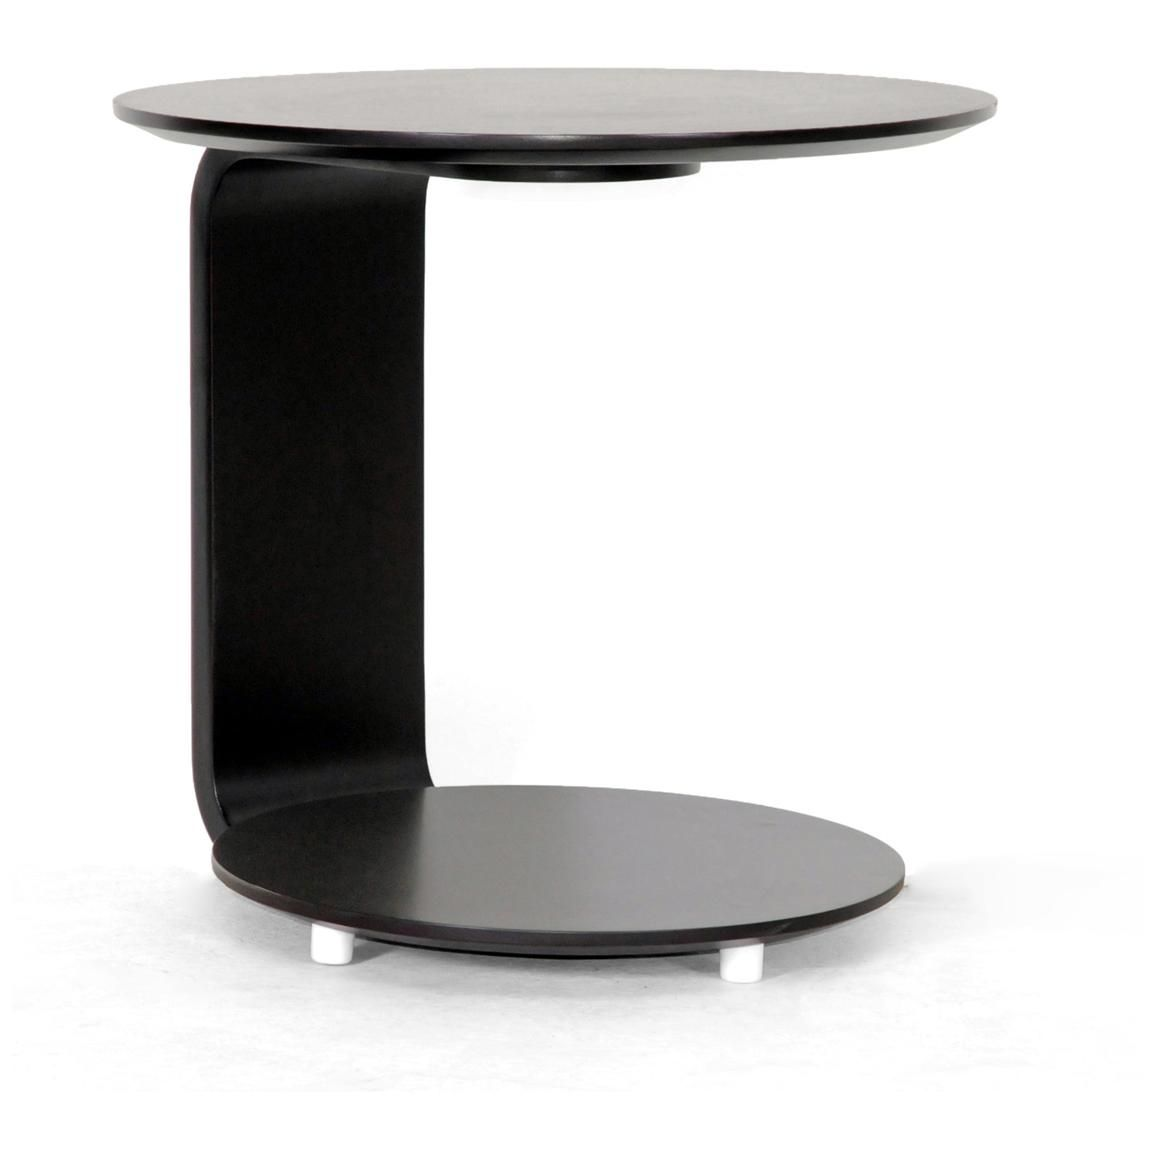 Attractive C Shaped Sofa Side Table Made Of Fiberglass In Black Finished With Rounded  Top And Pedestal